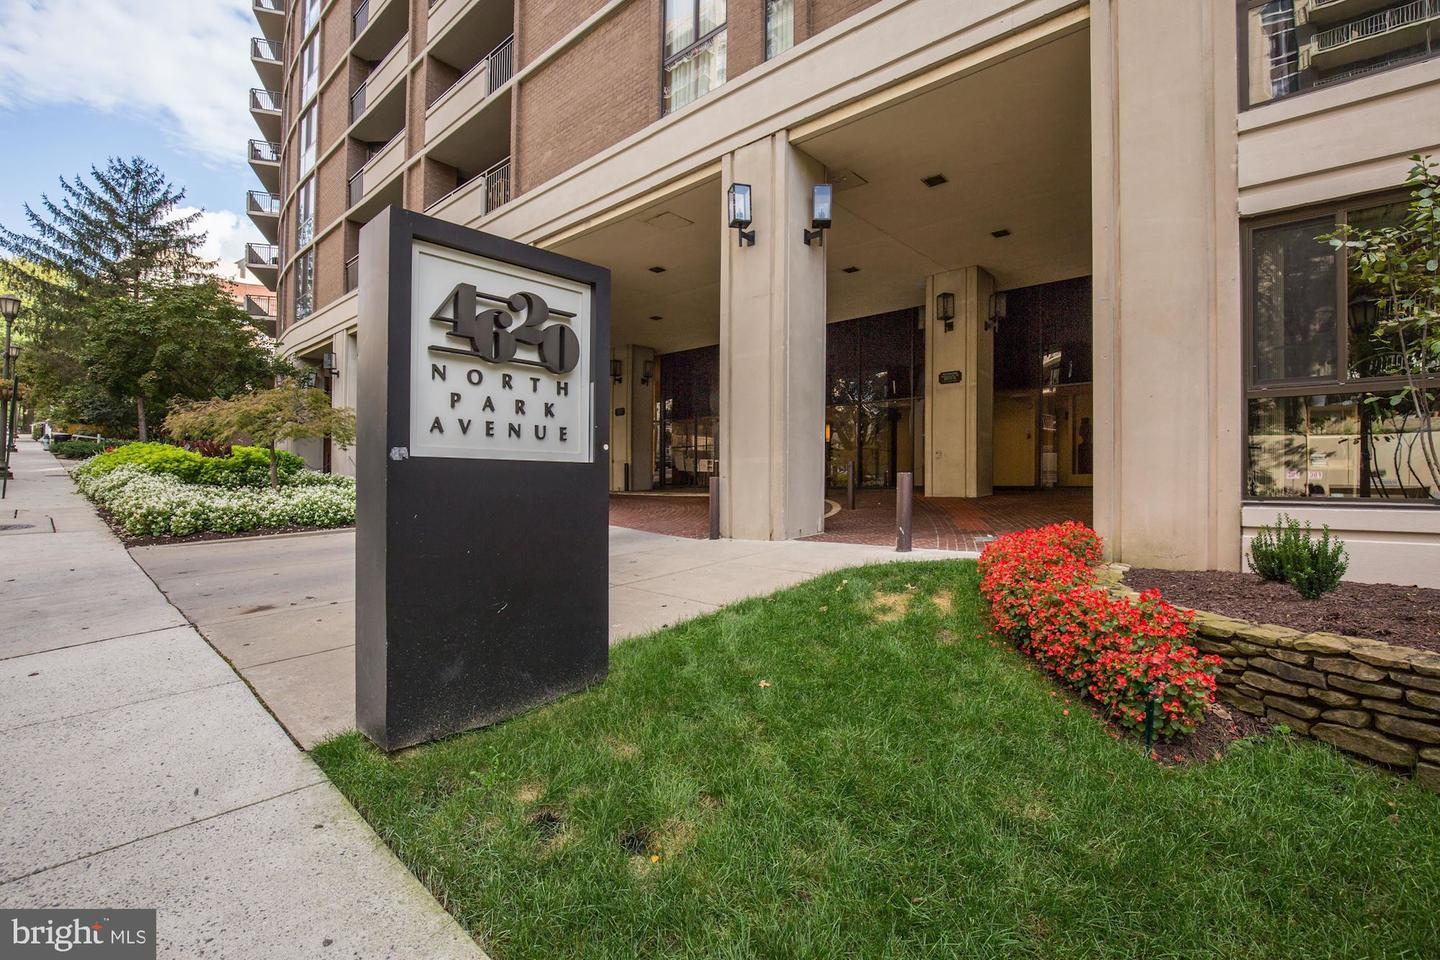 4620 N PARK AVENUE 1405, CHEVY CHASE, Maryland